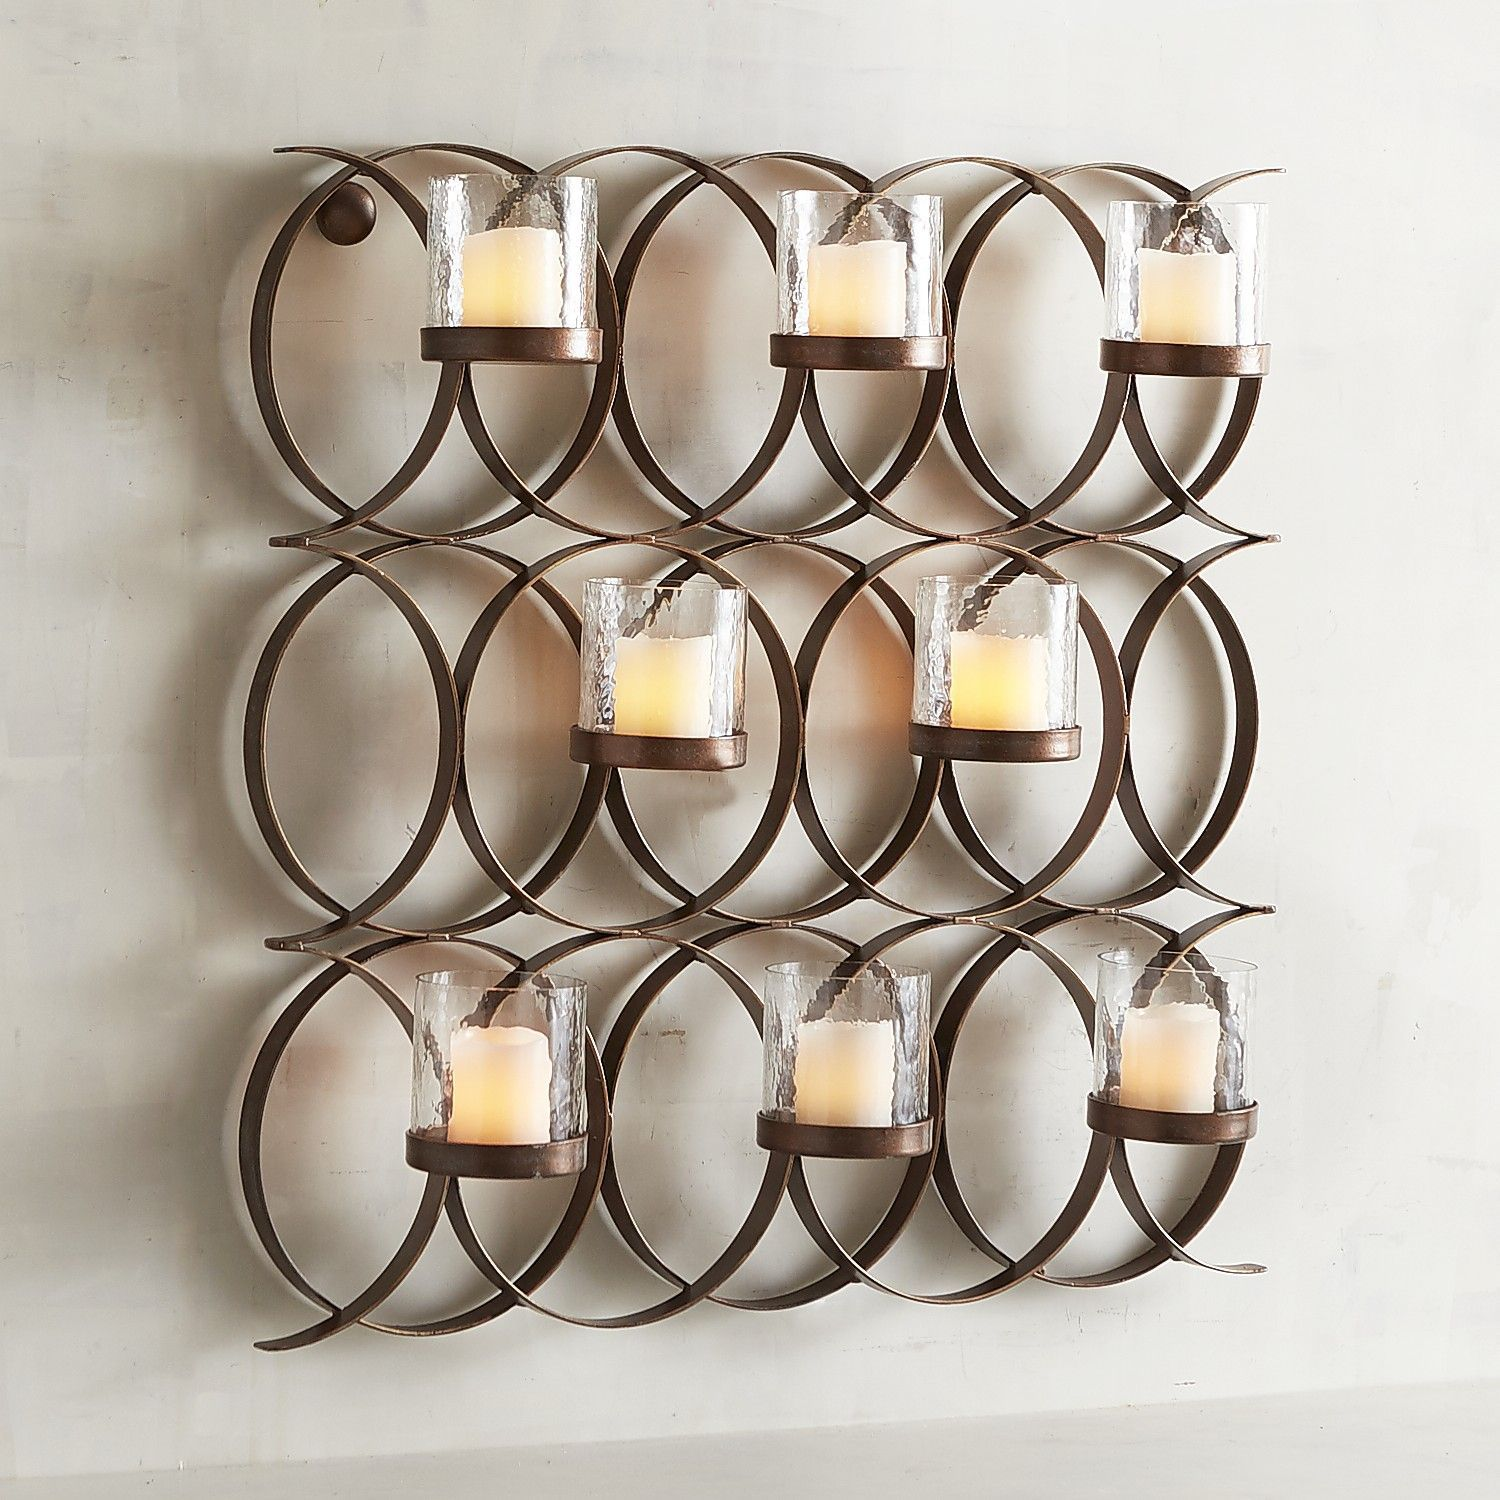 Intertwining Circles Multi Candle Wall Sconce Wall Candle